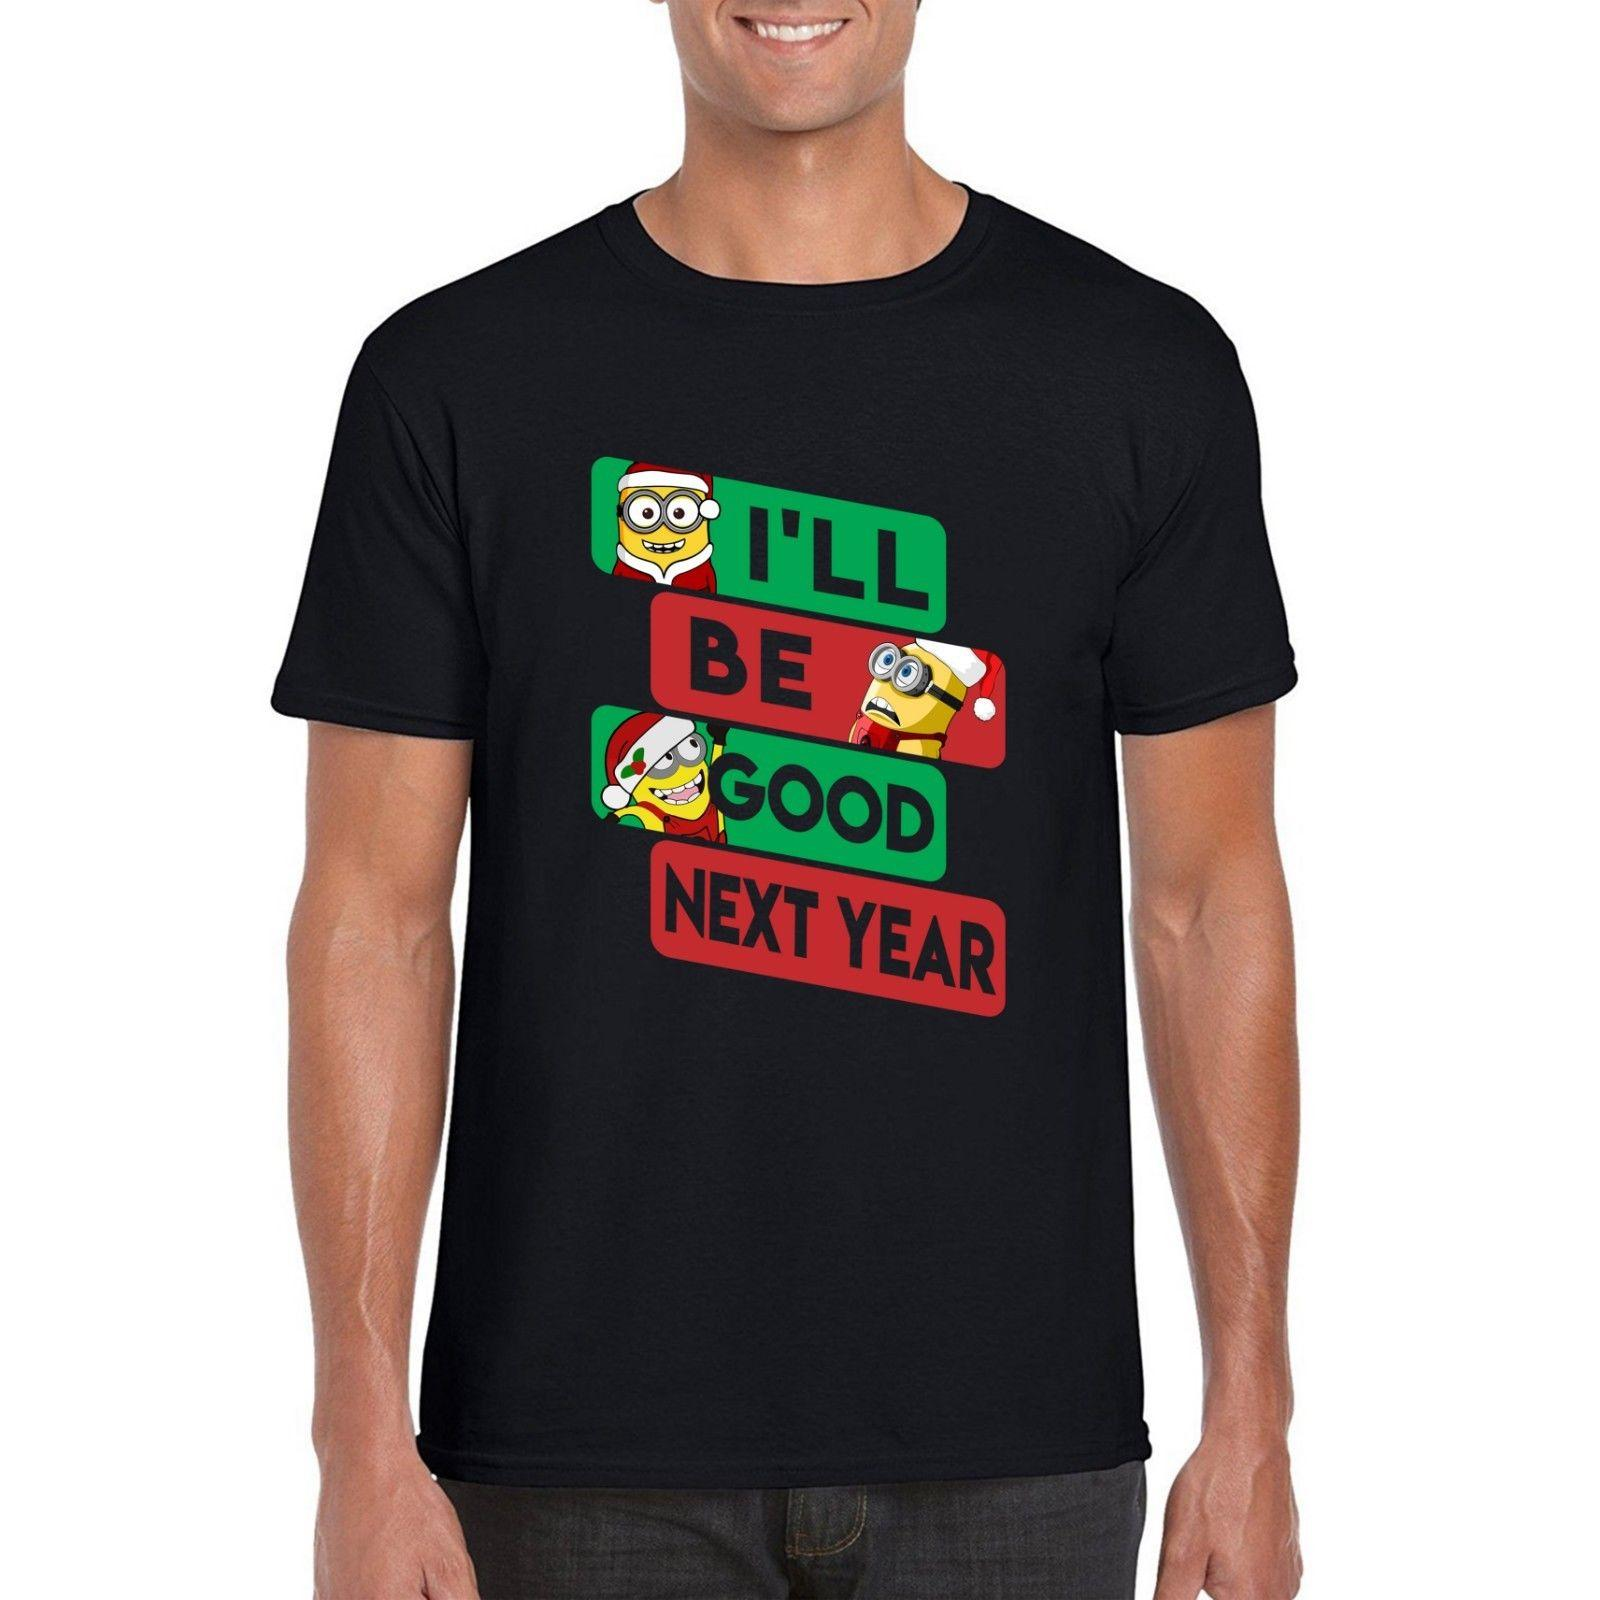 minion christmas t shirt ill be good next year xmas inspired parody tee top best site for t shirts funny t shirt companies from fashiontshirt - Minion Christmas Shirt